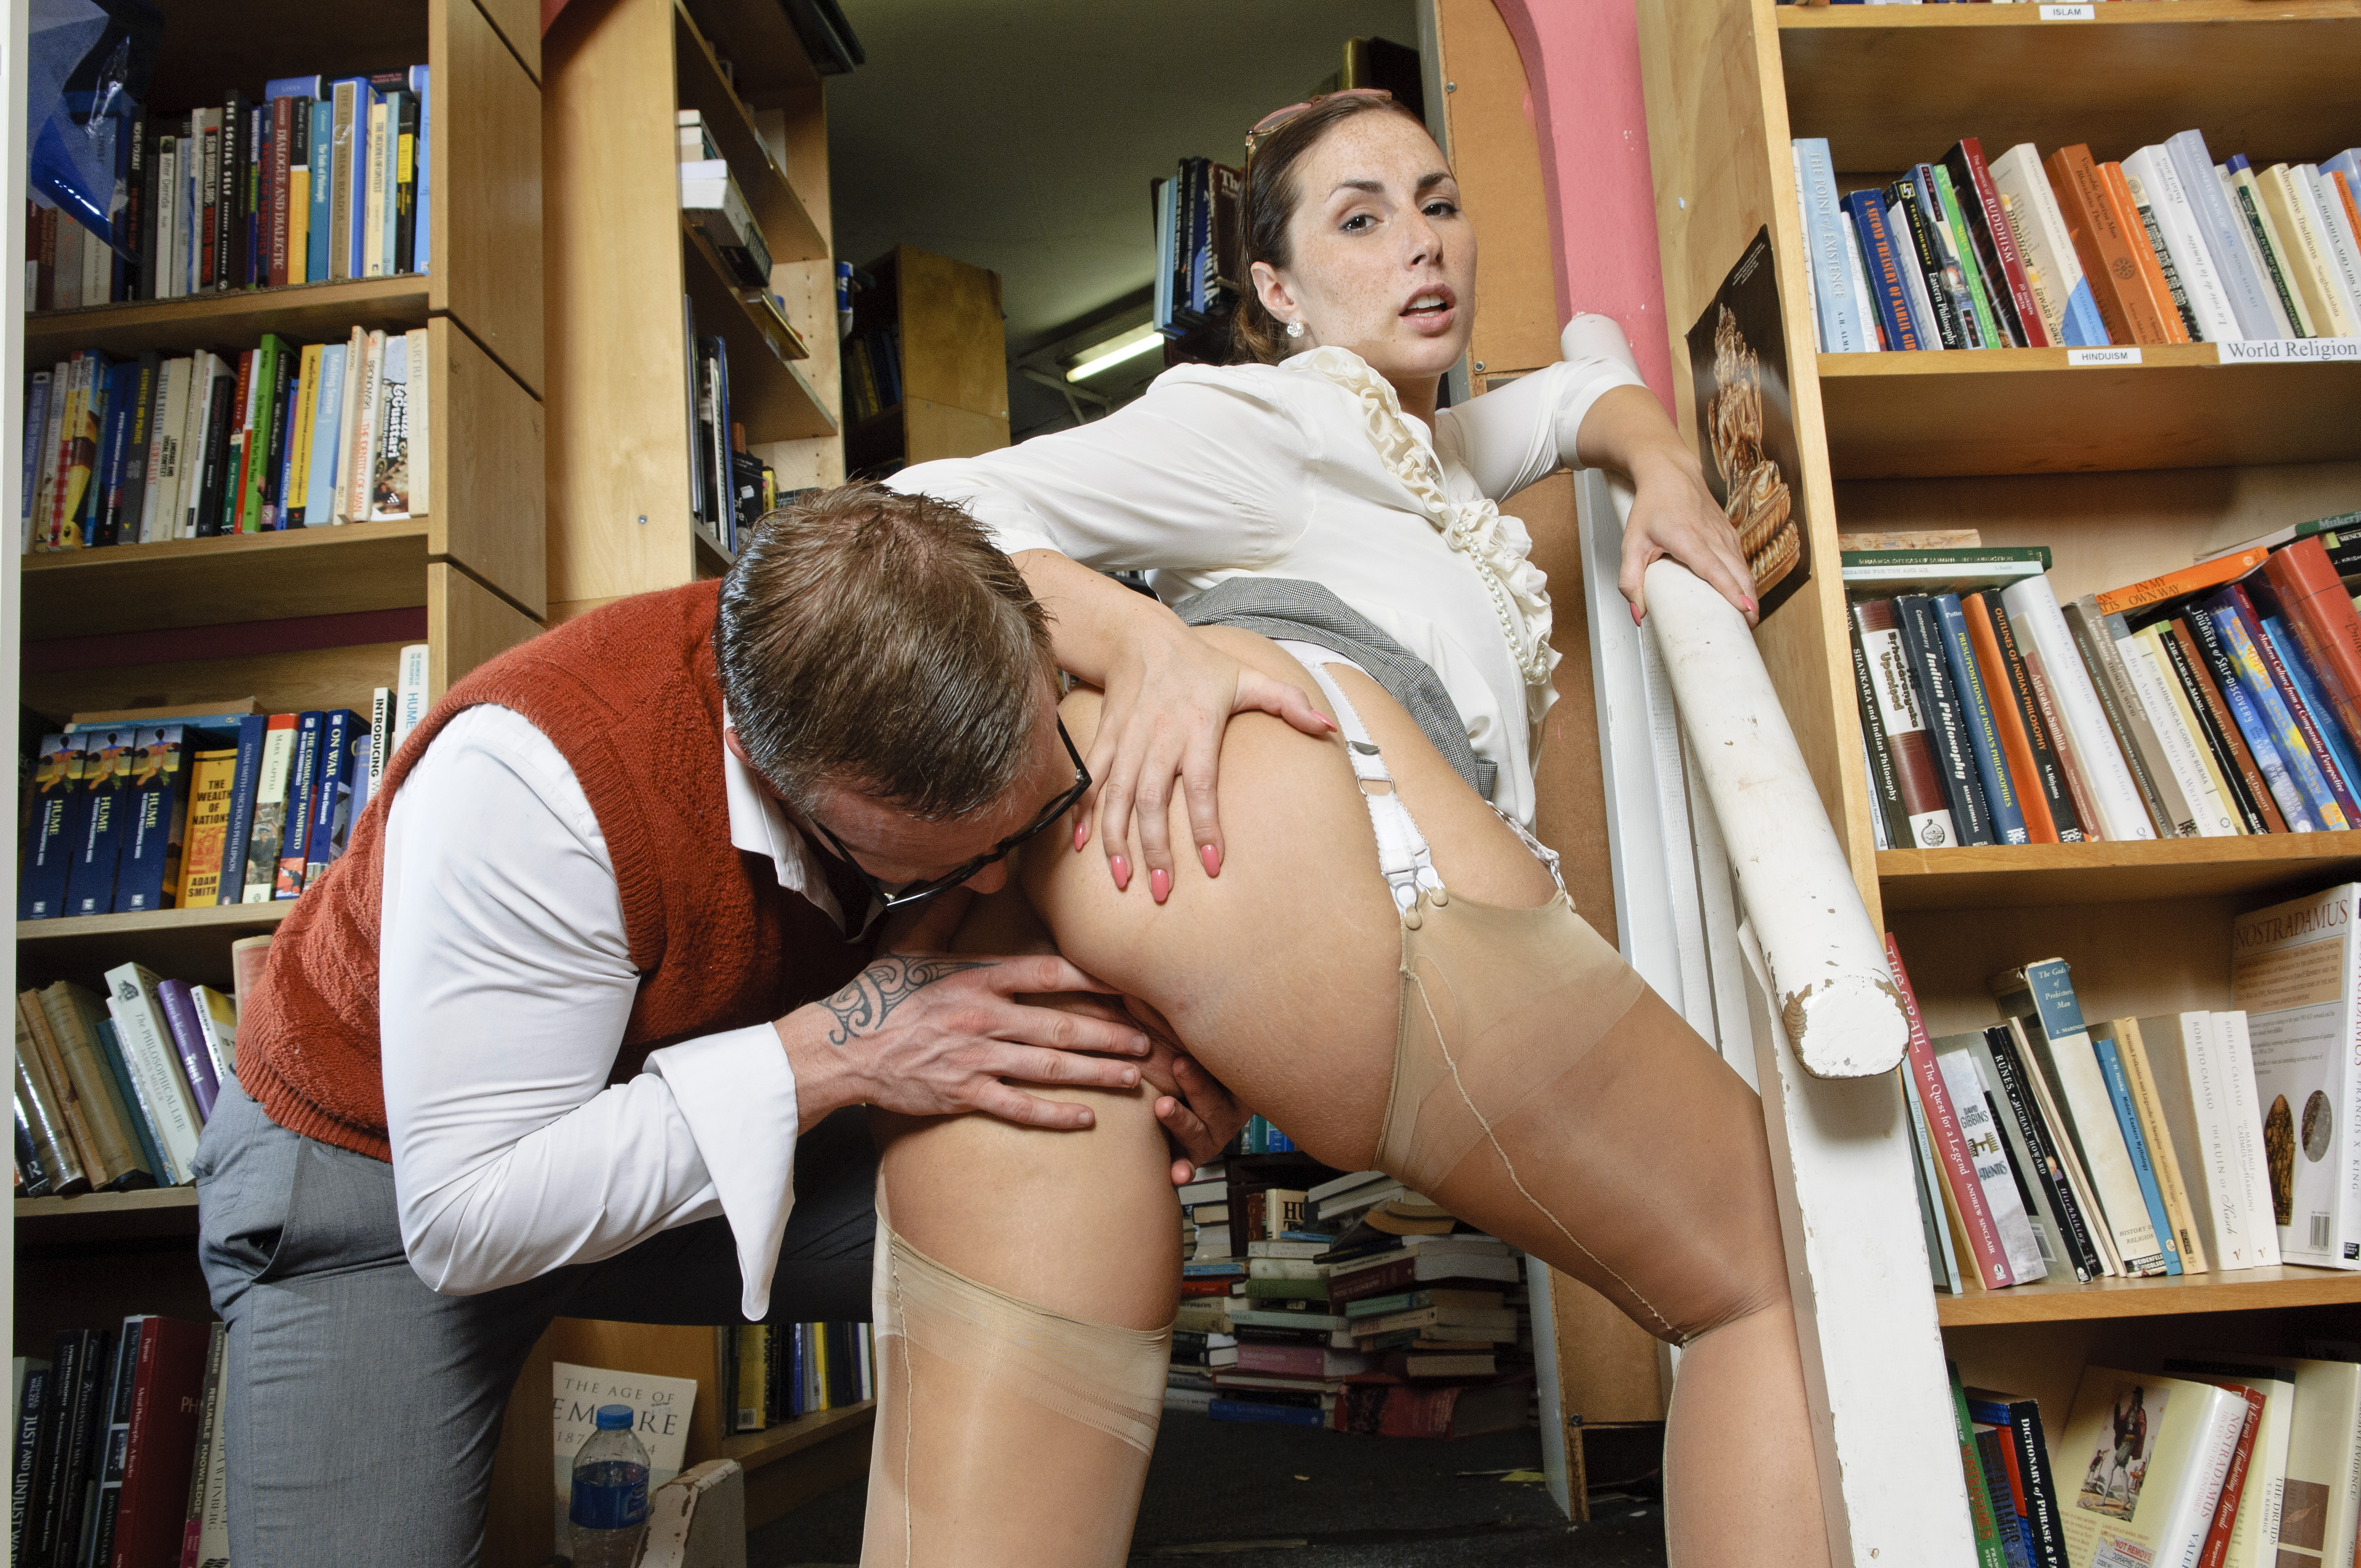 Librarian x nude free porn